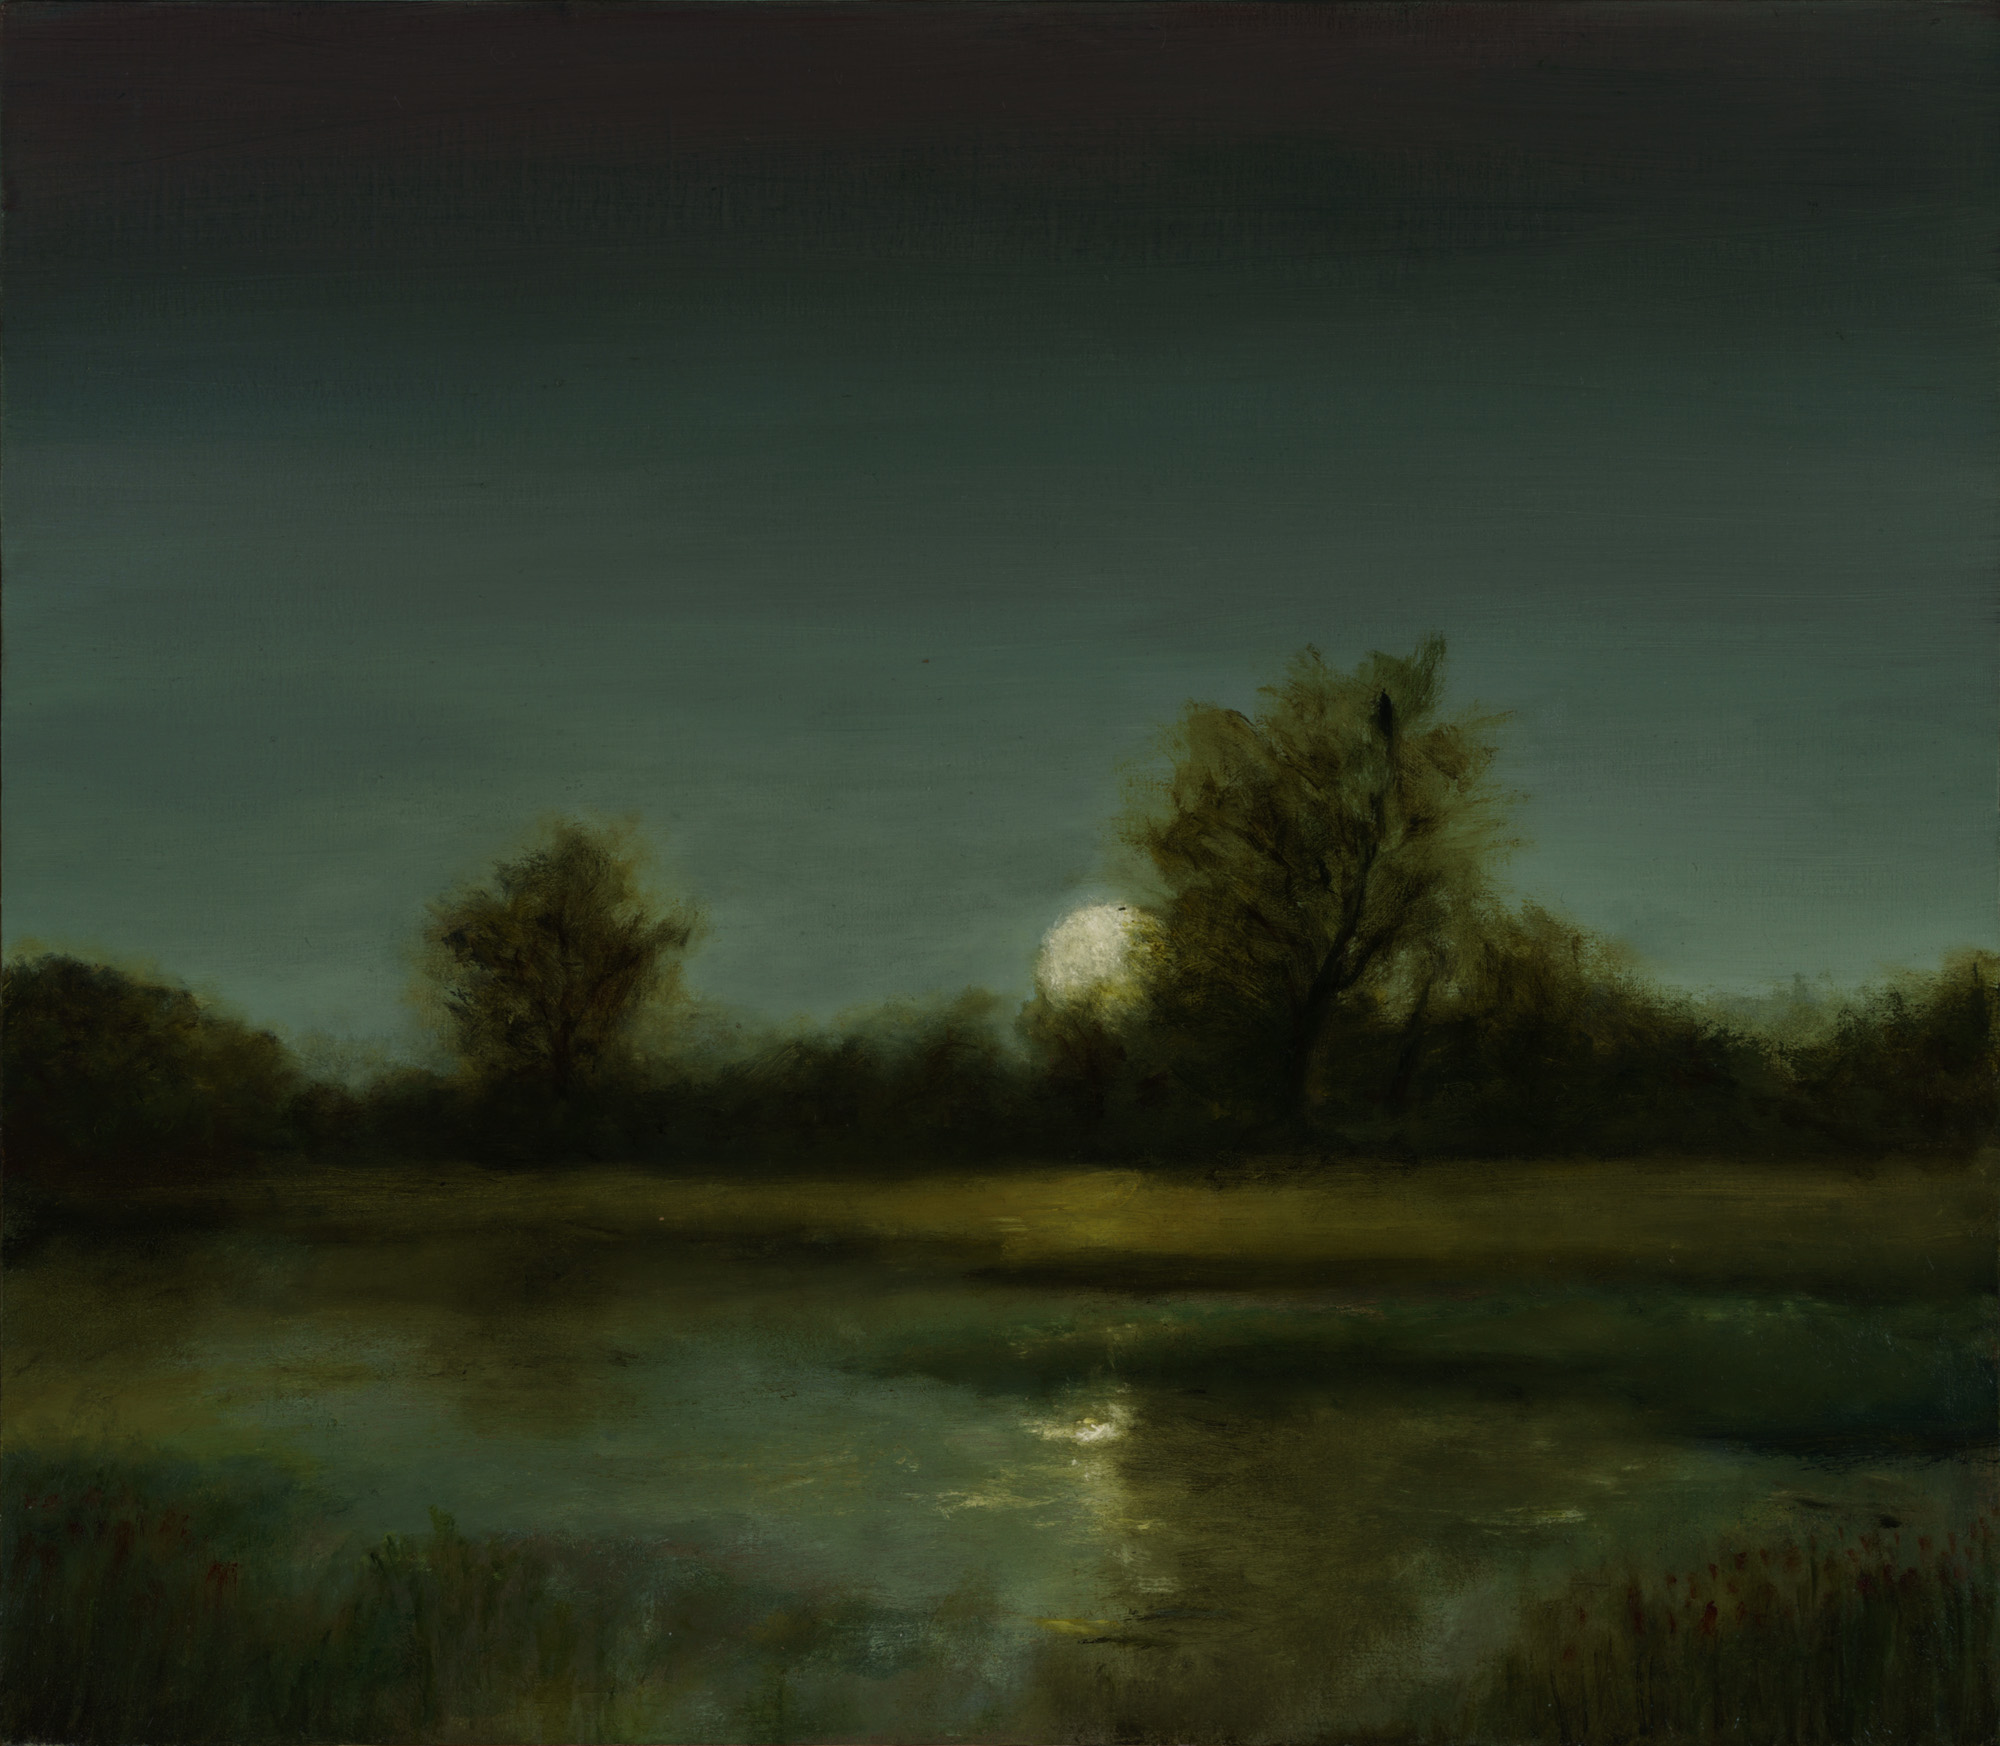 American Tonalism / Moon Over Marsh / Chris Peters